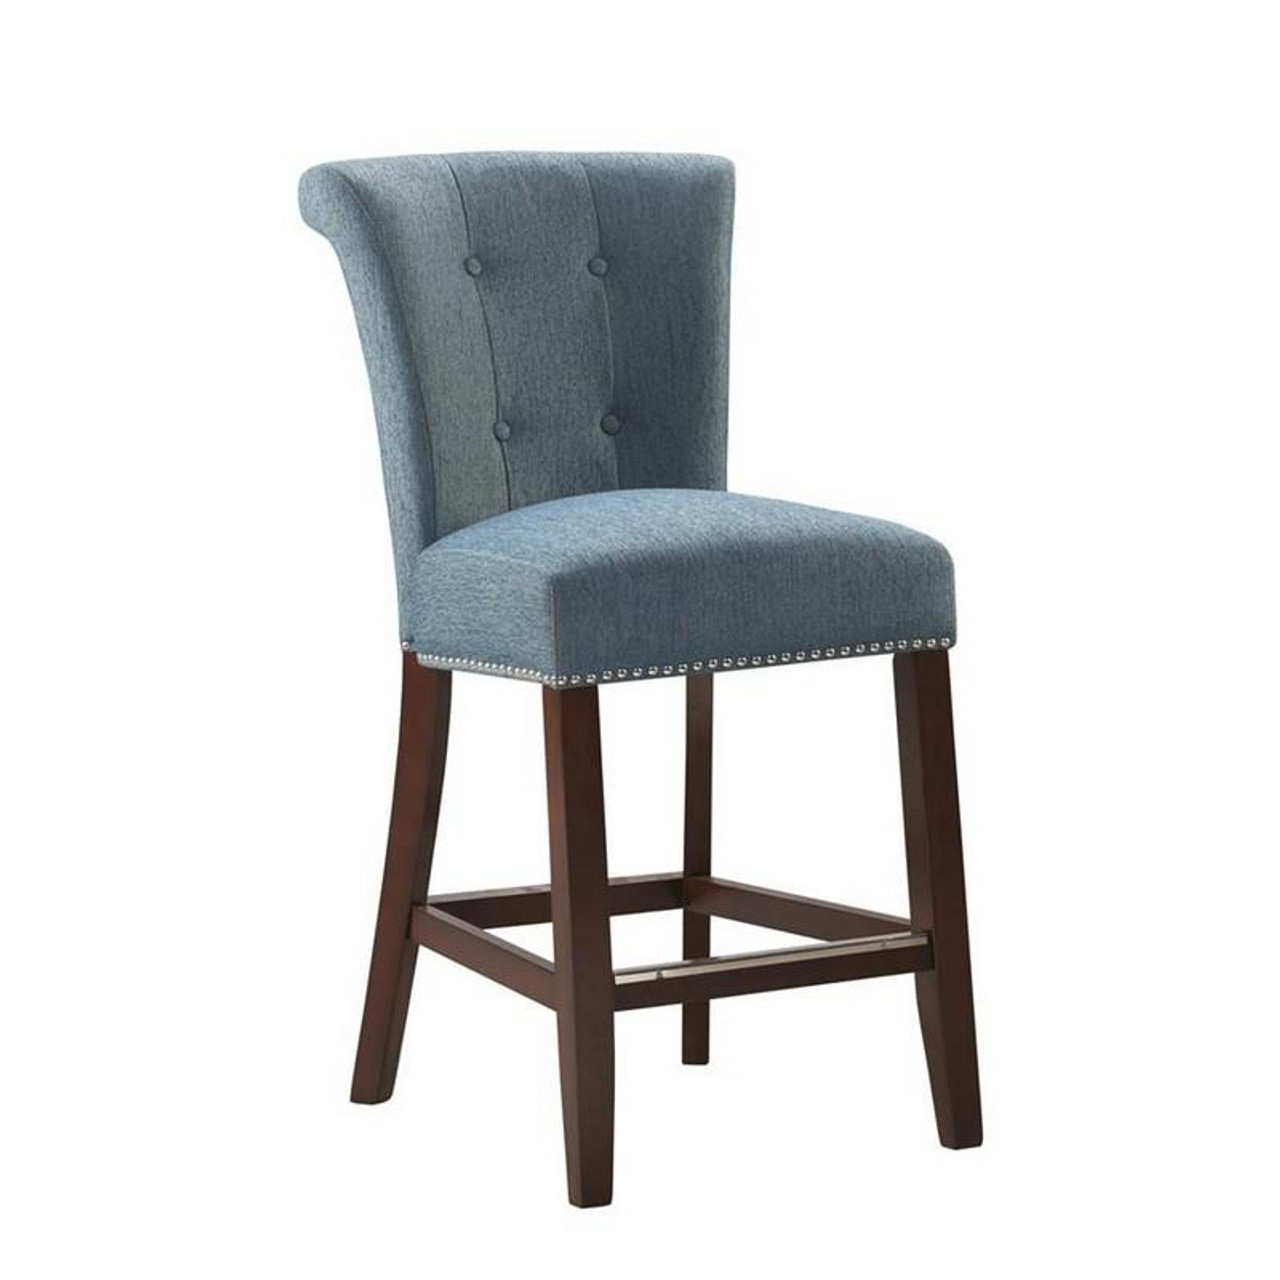 Madison Park Colfax Counter Stool FPF9 9 By Olliix